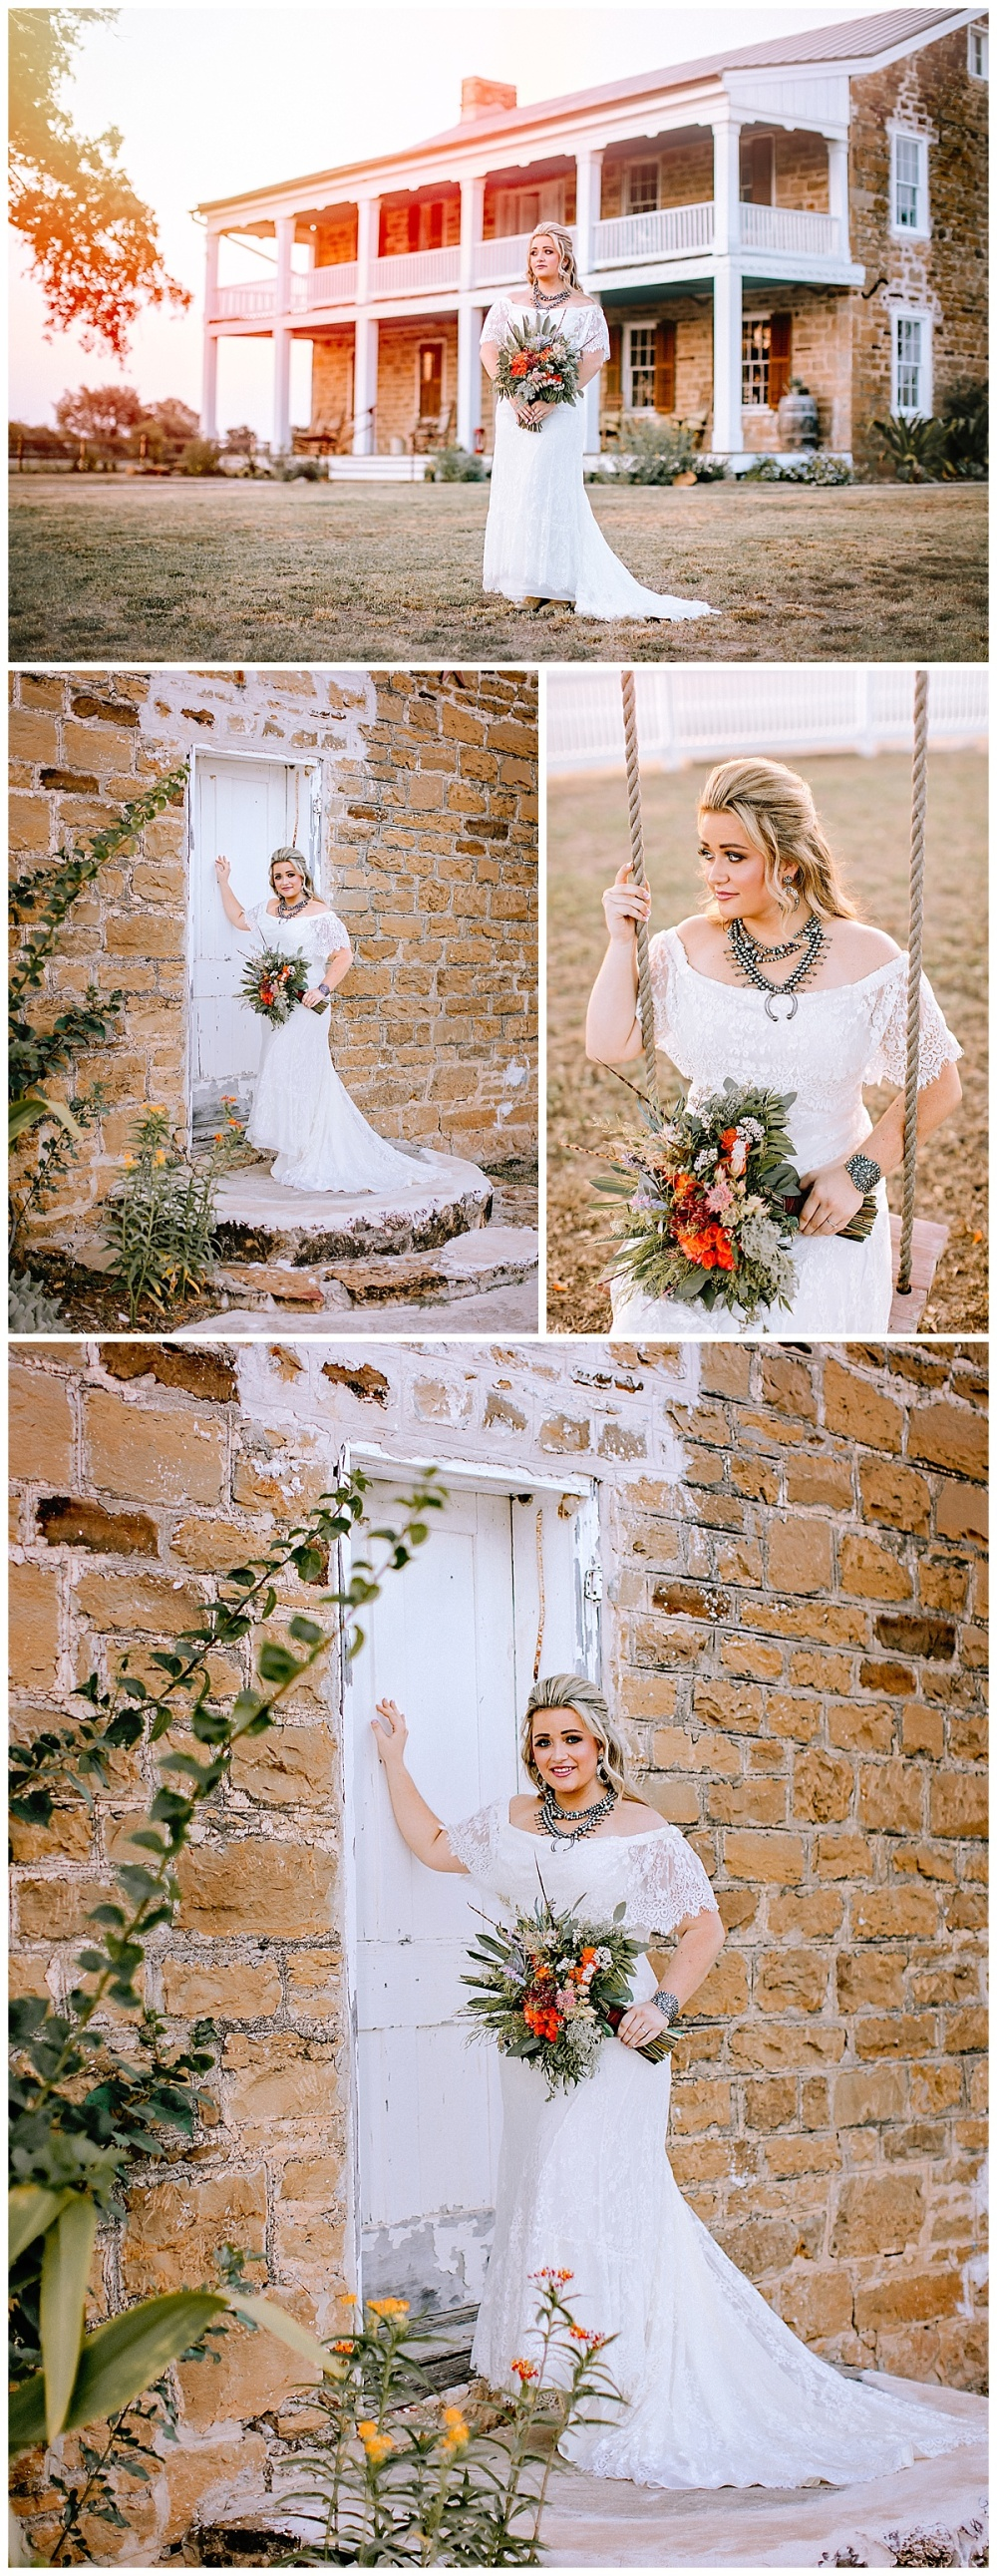 Carly-Barton-Photography-Whitehall-Polley-Mansion-Sutherland-Springs-Texas-Wedding-Bridals-Caitlin_0010.jpg